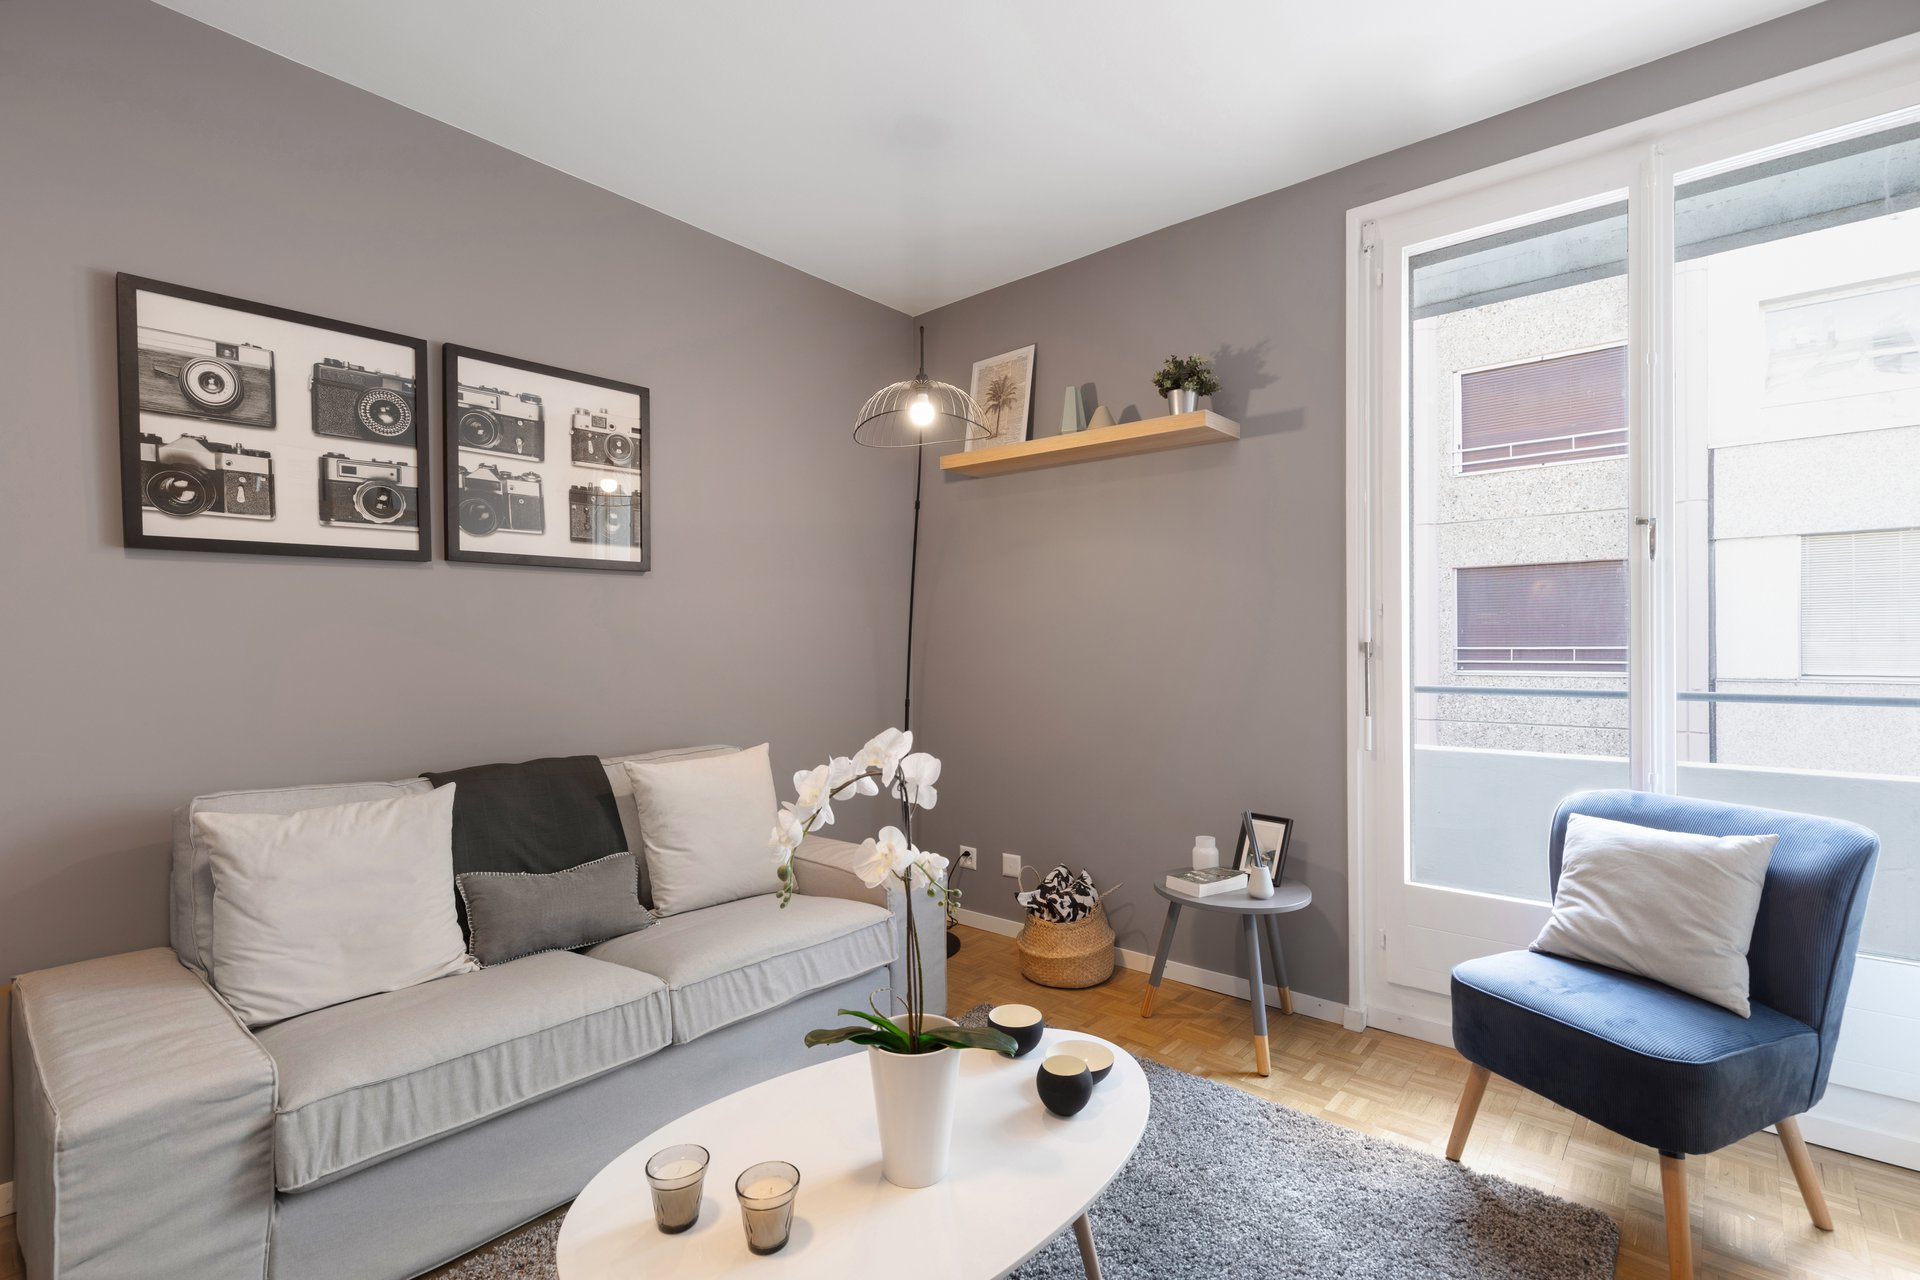 This apartment has entirely been refurbished. The kitchen and the bathroom have been completely renovated and the living room